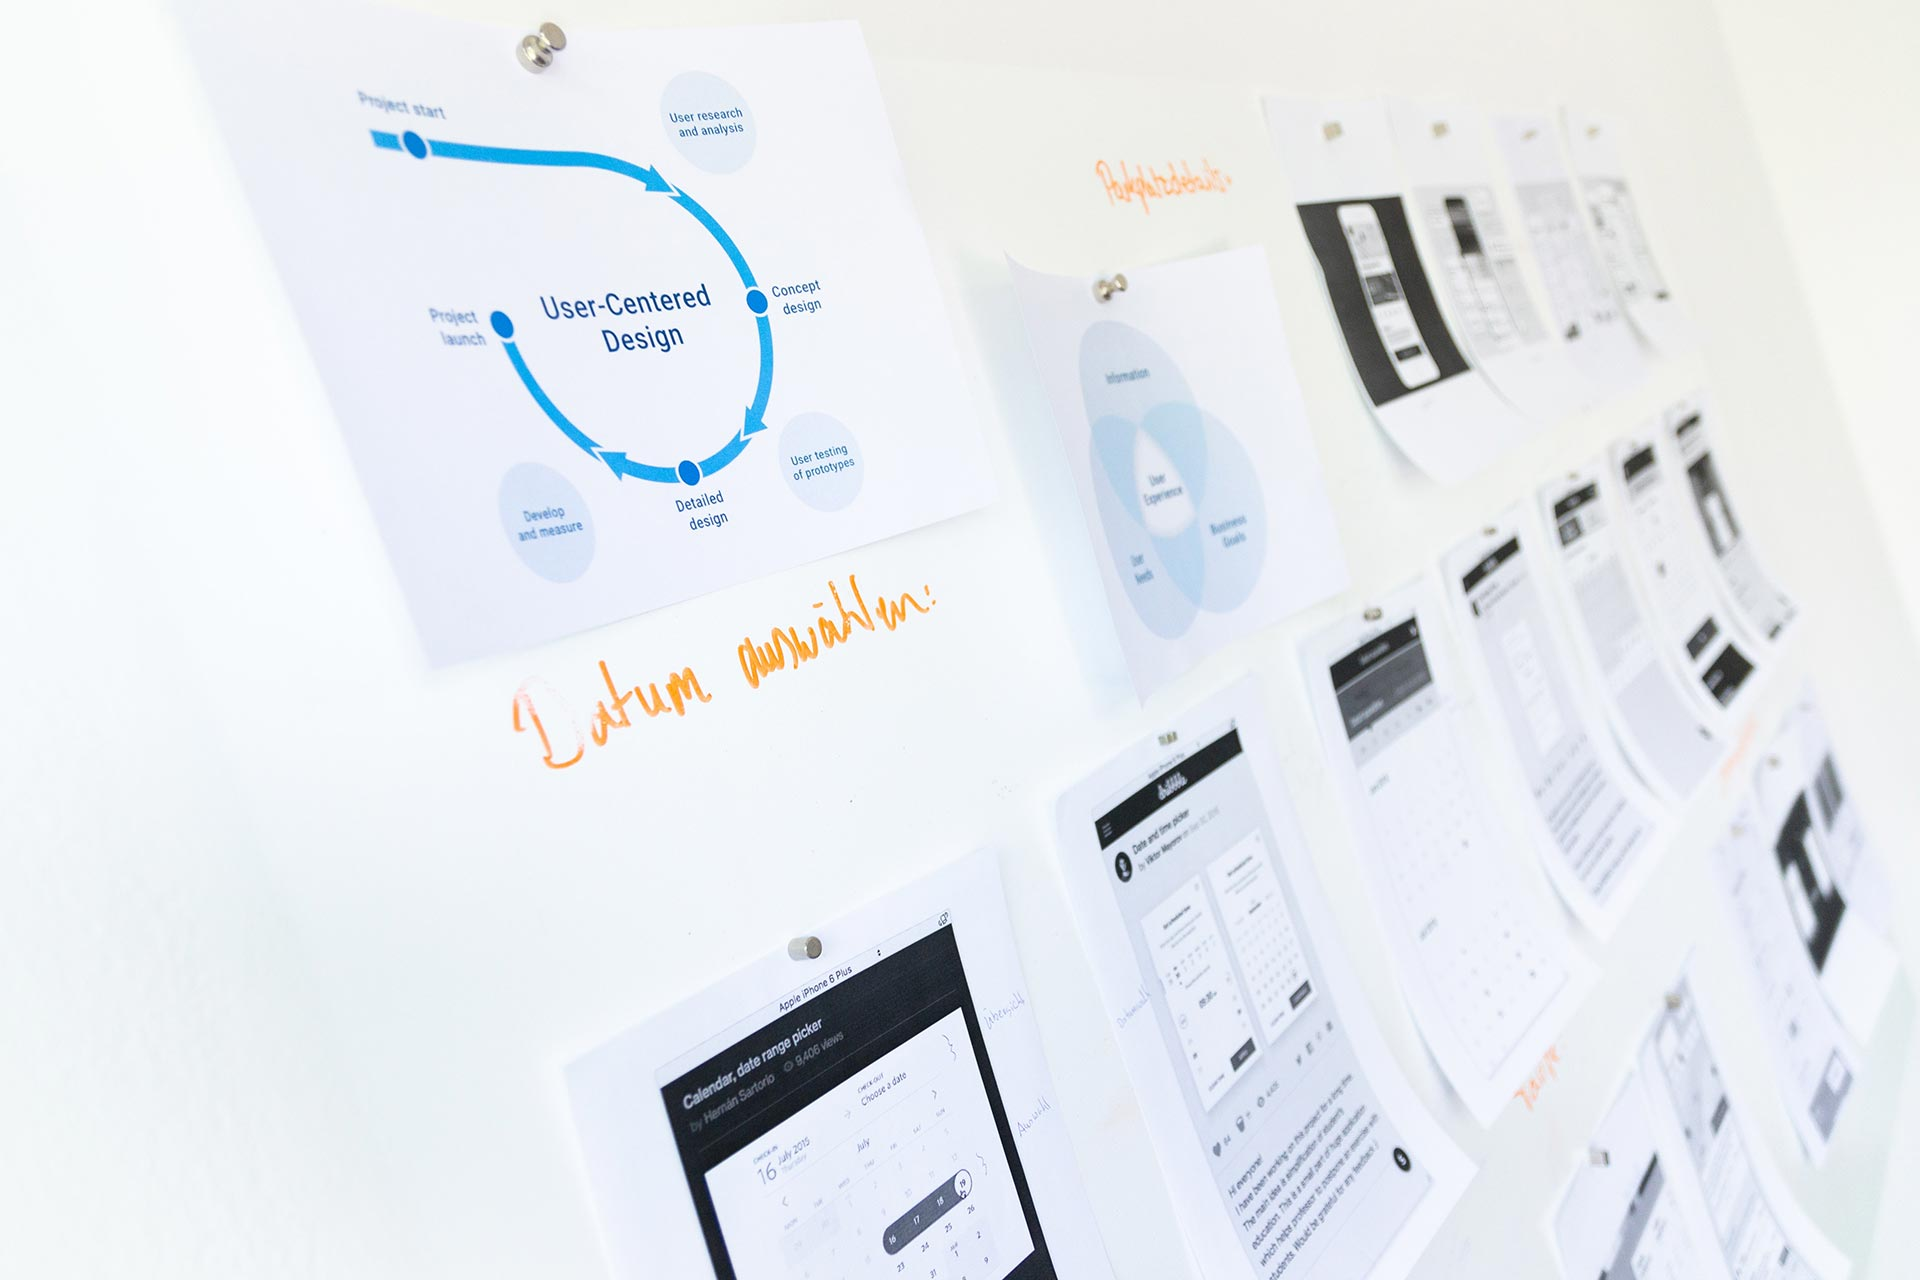 Targeting Consumers using Human Centered Design